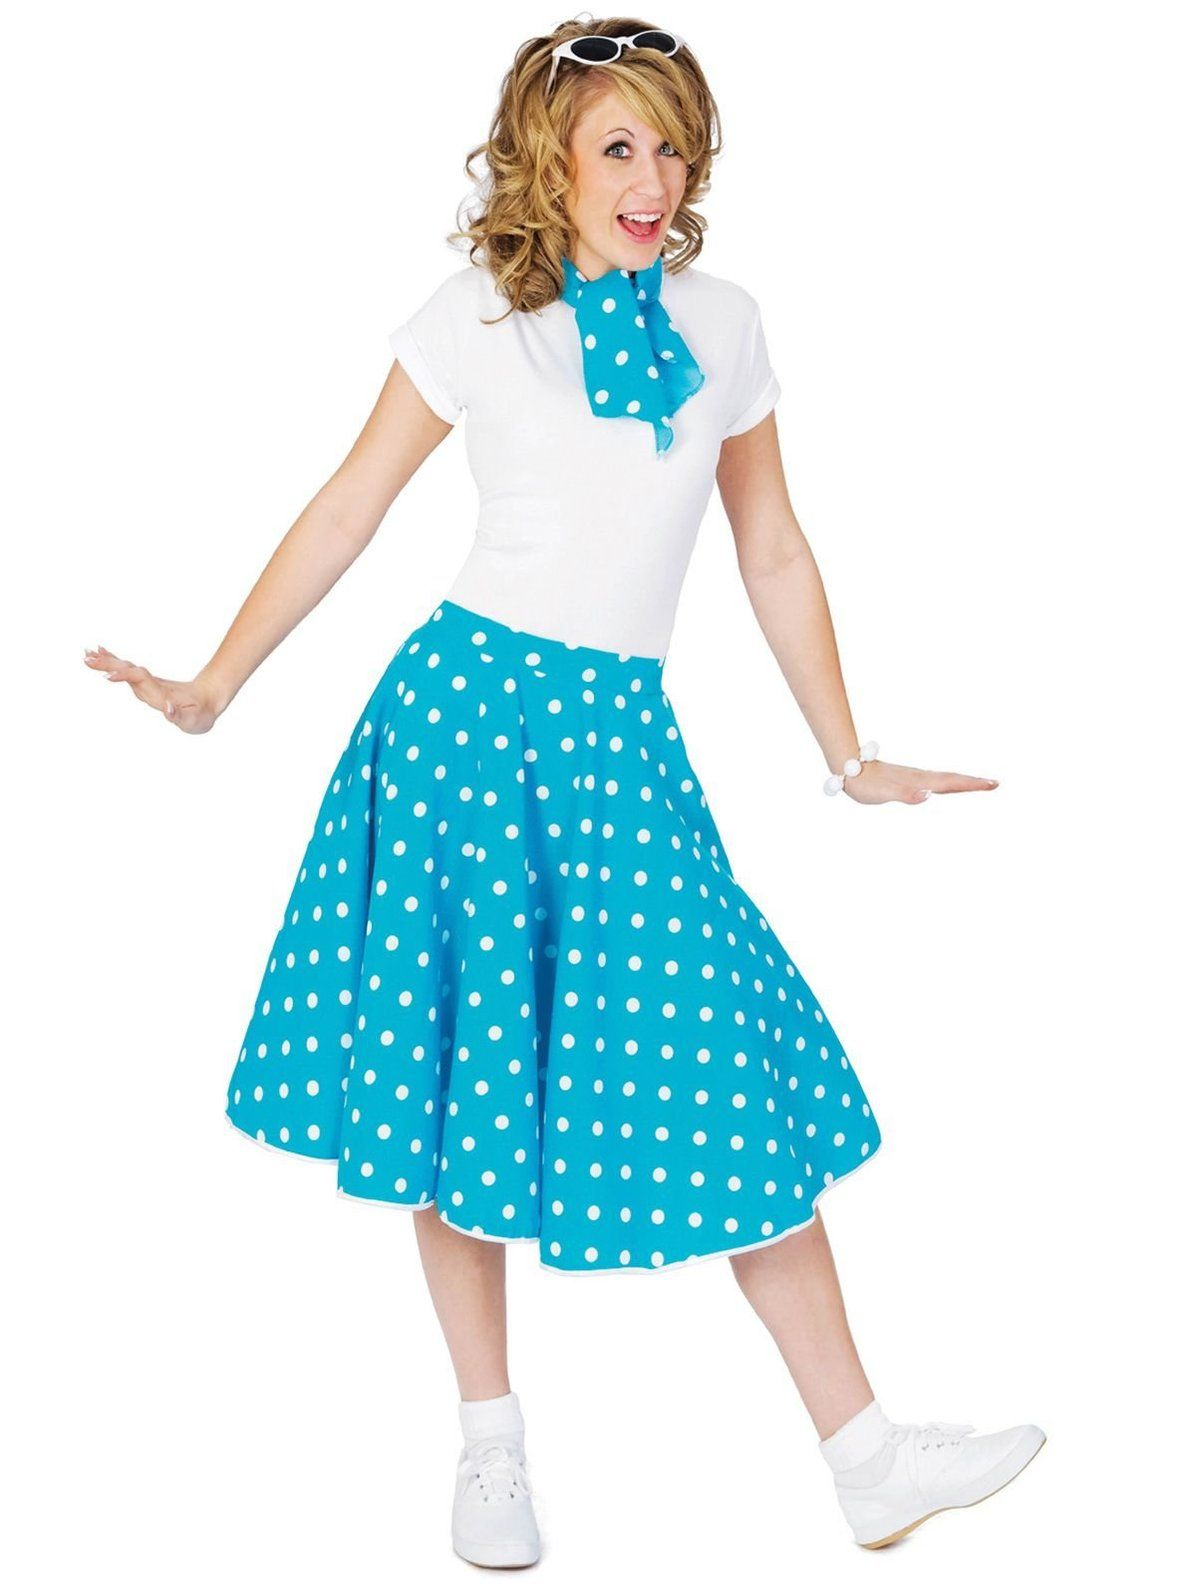 View Larger Image Womens 50s costume, Poodle skirt, 50s